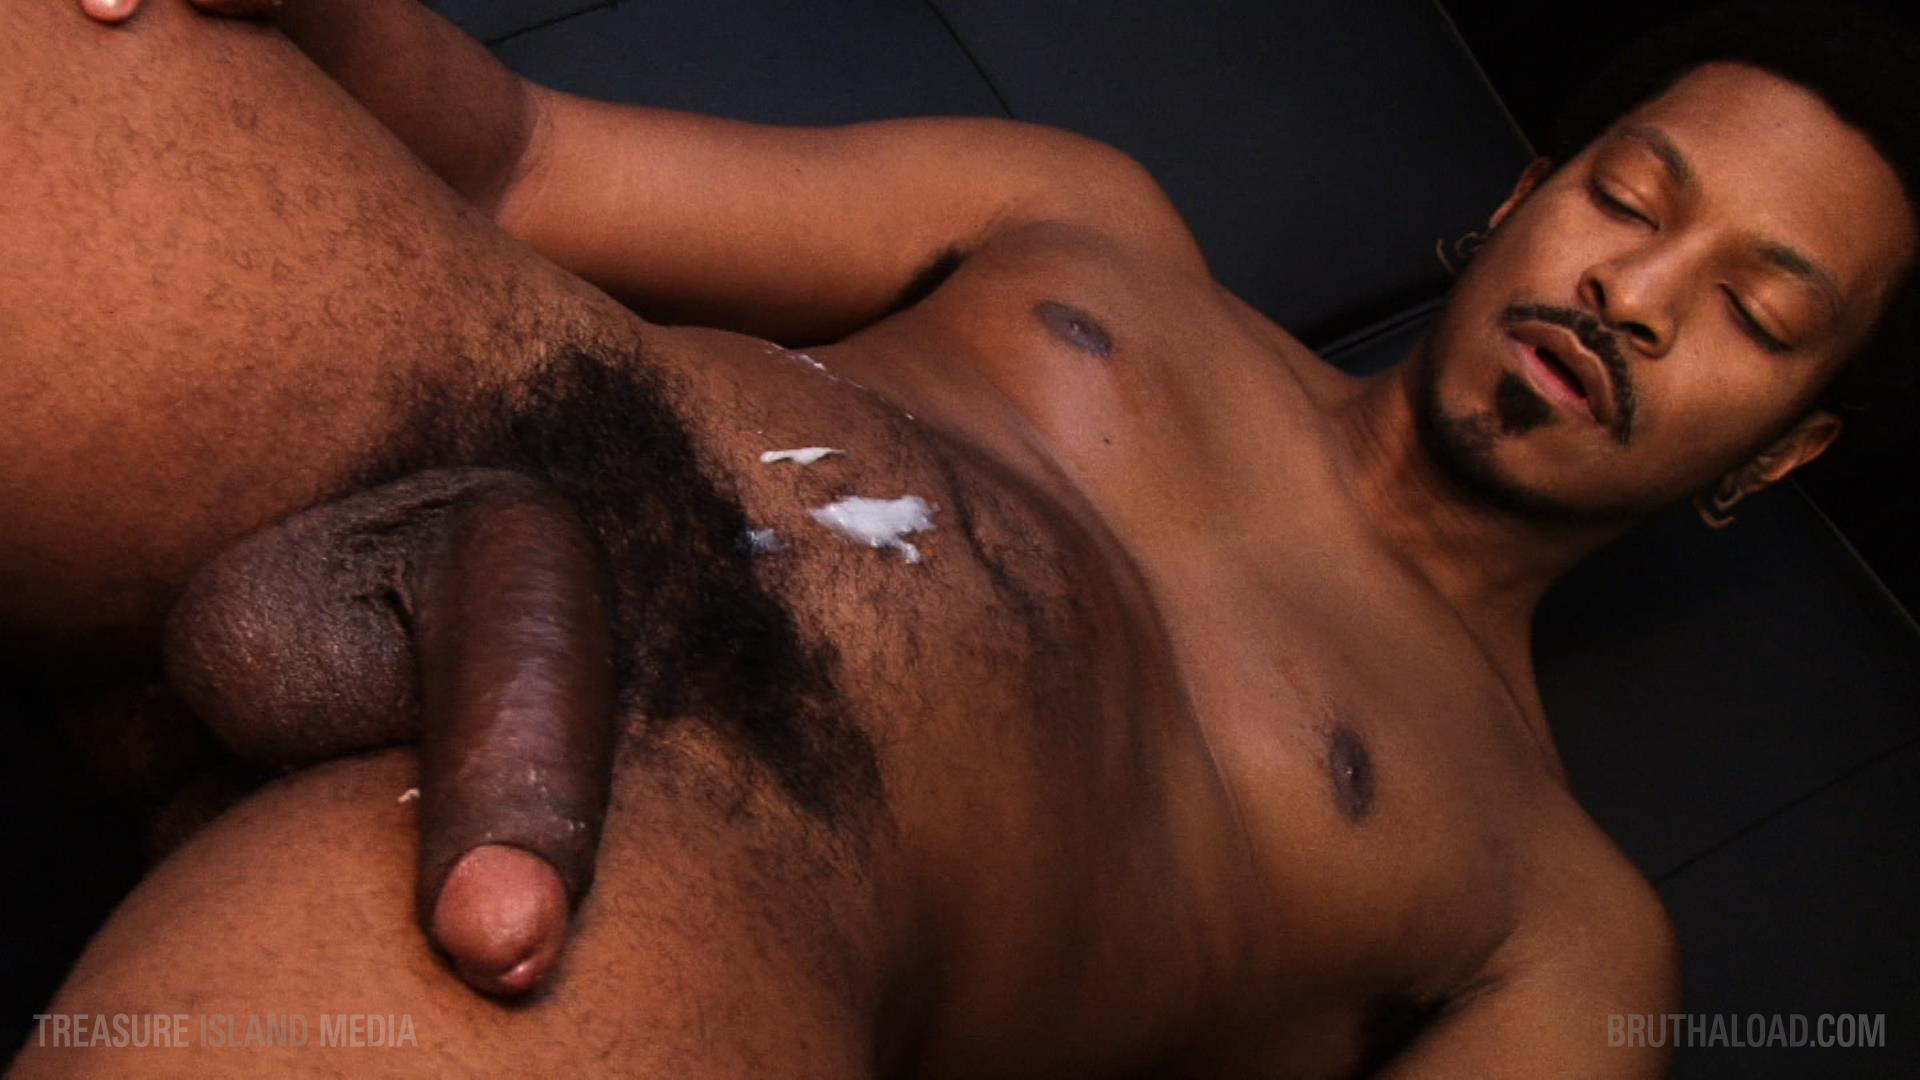 Treasure-Island-Media-Bruthaload-Devin-Masters-Big-Black-Uncut-Cock-25 Treasure Island Media's Bruthaload: Devin Masters Edging His Big Black Uncut Cock